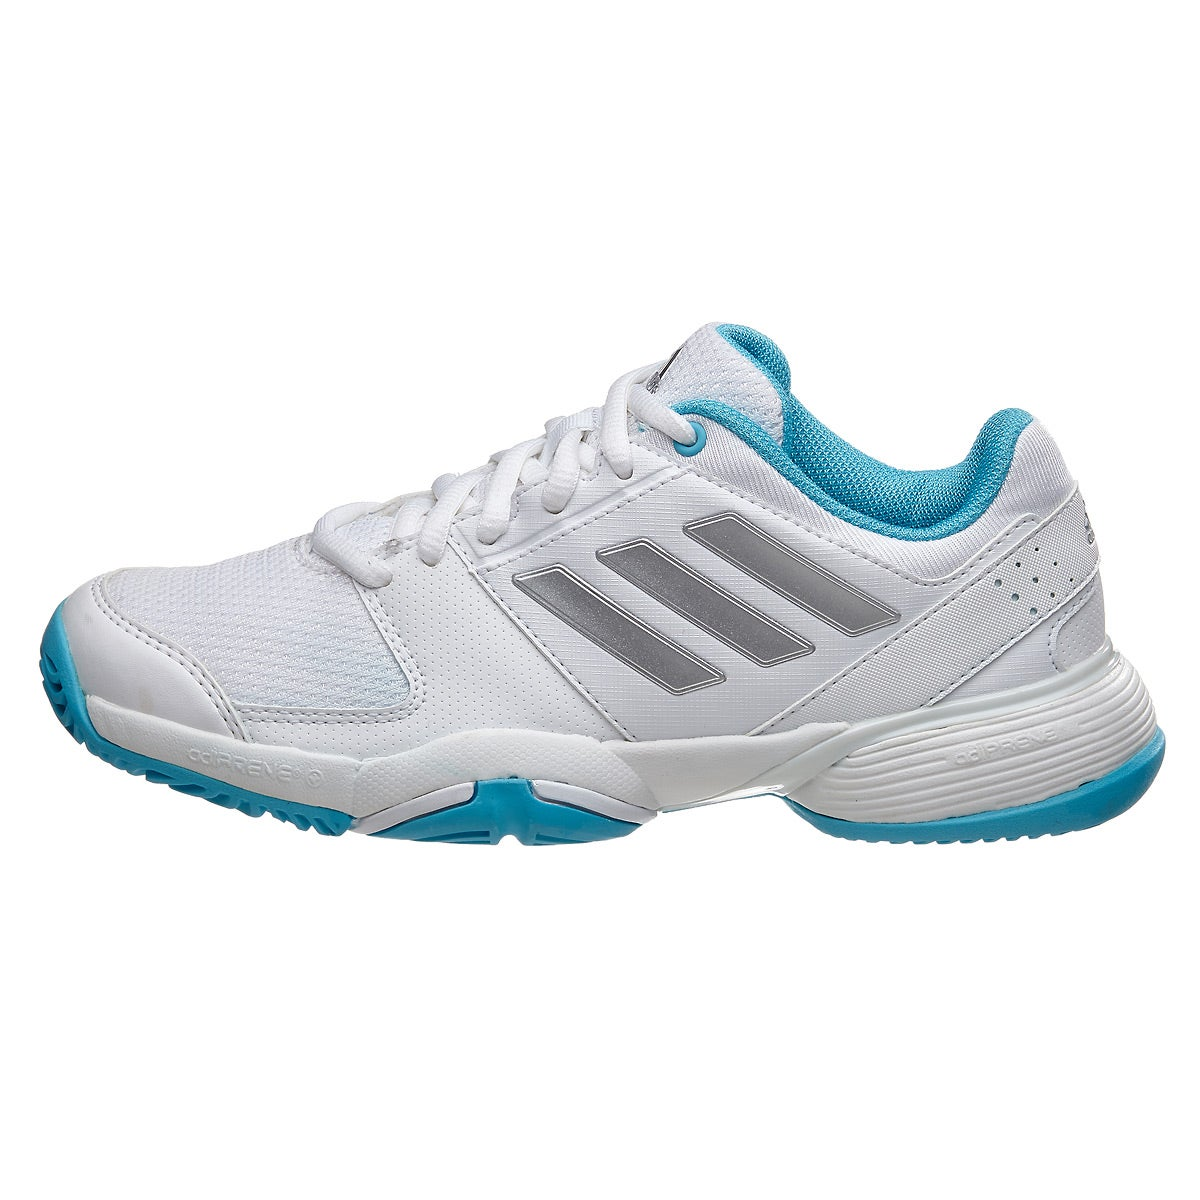 Tennis Only Shoes